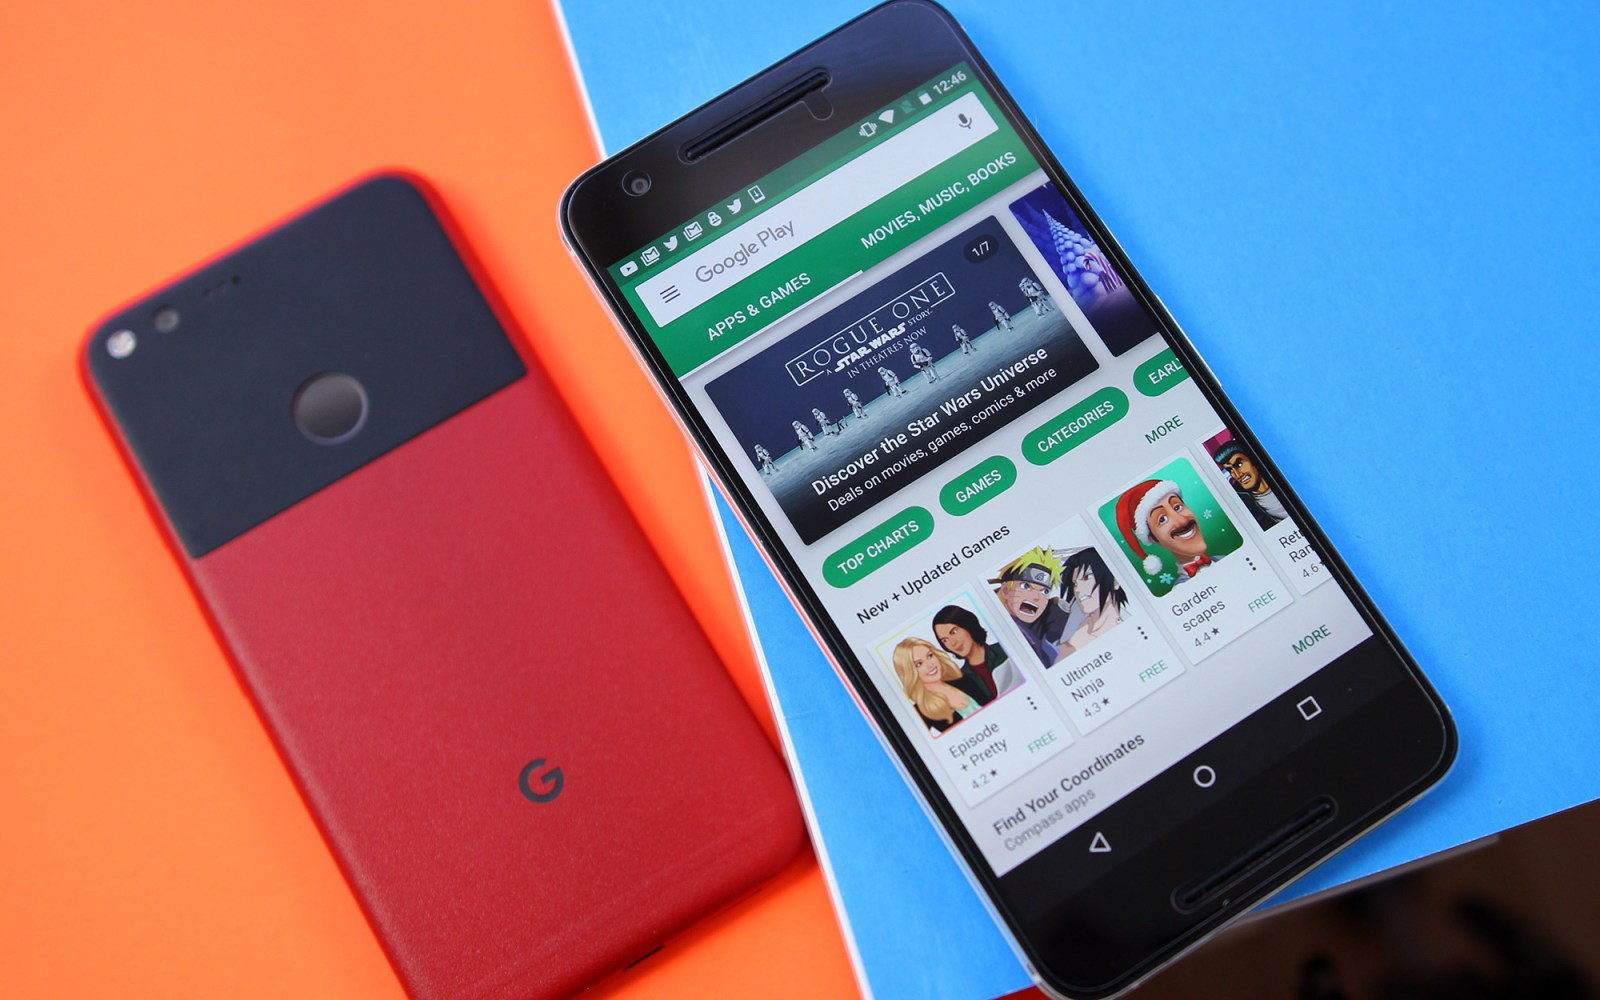 Just got a new Android smartphone? Here are a few apps you should download right away